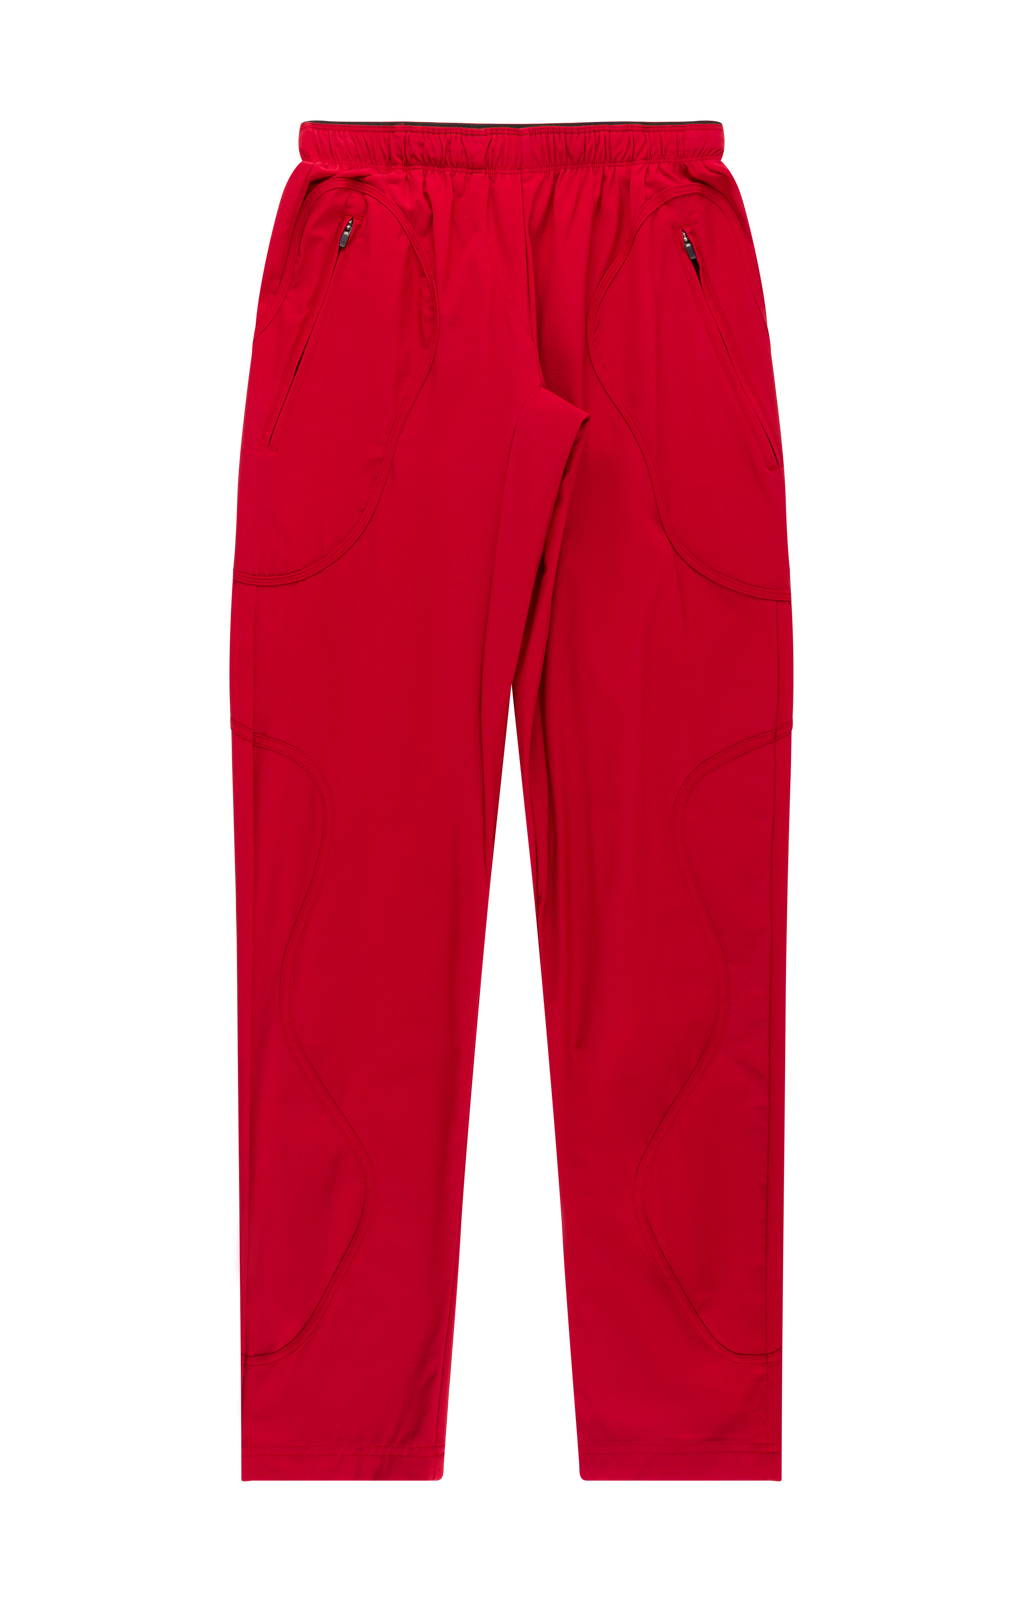 WILD - METICULOUS CRAFTSMANSHIP, BEAUTIFUL UTILITY TRAVEL PANT VOLCANO RED